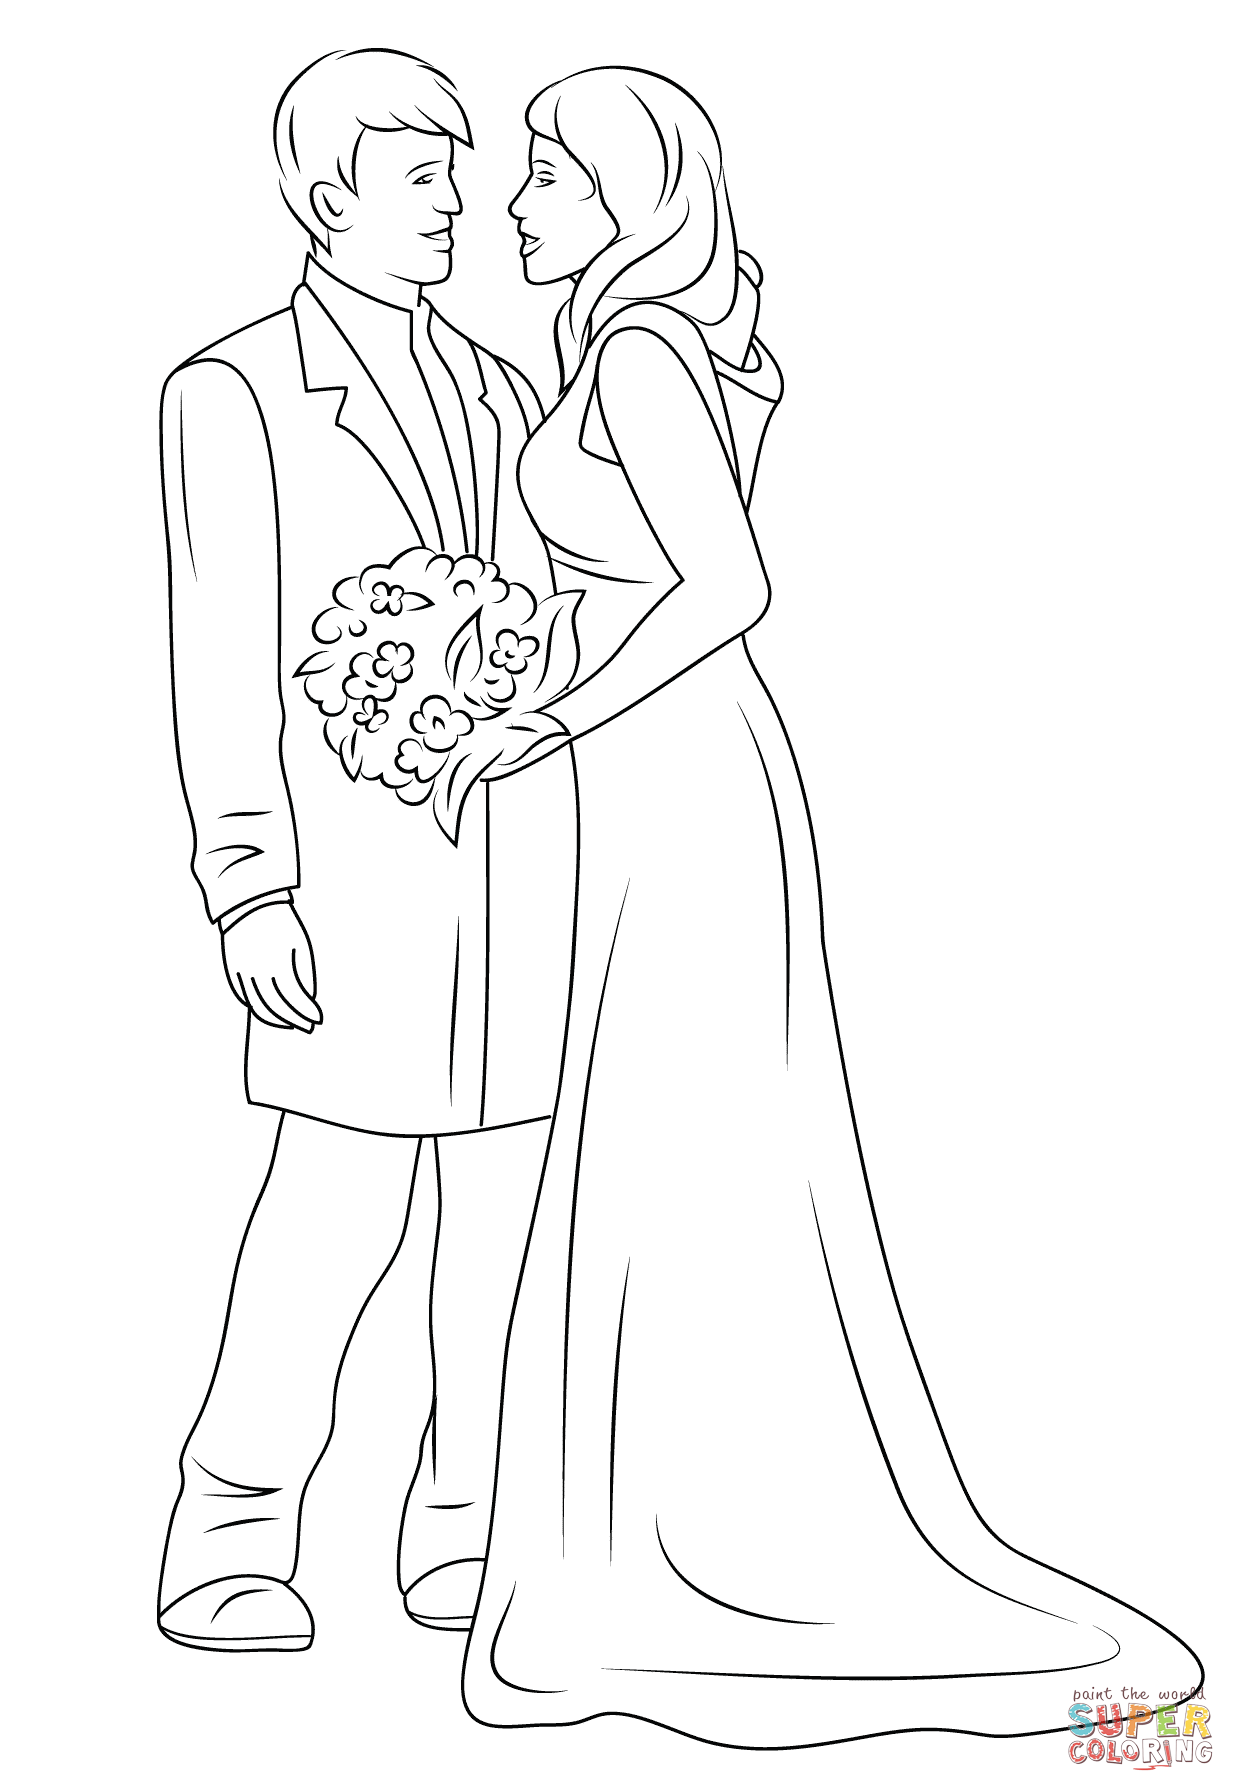 Wedding Drawing Pictures At Getdrawings